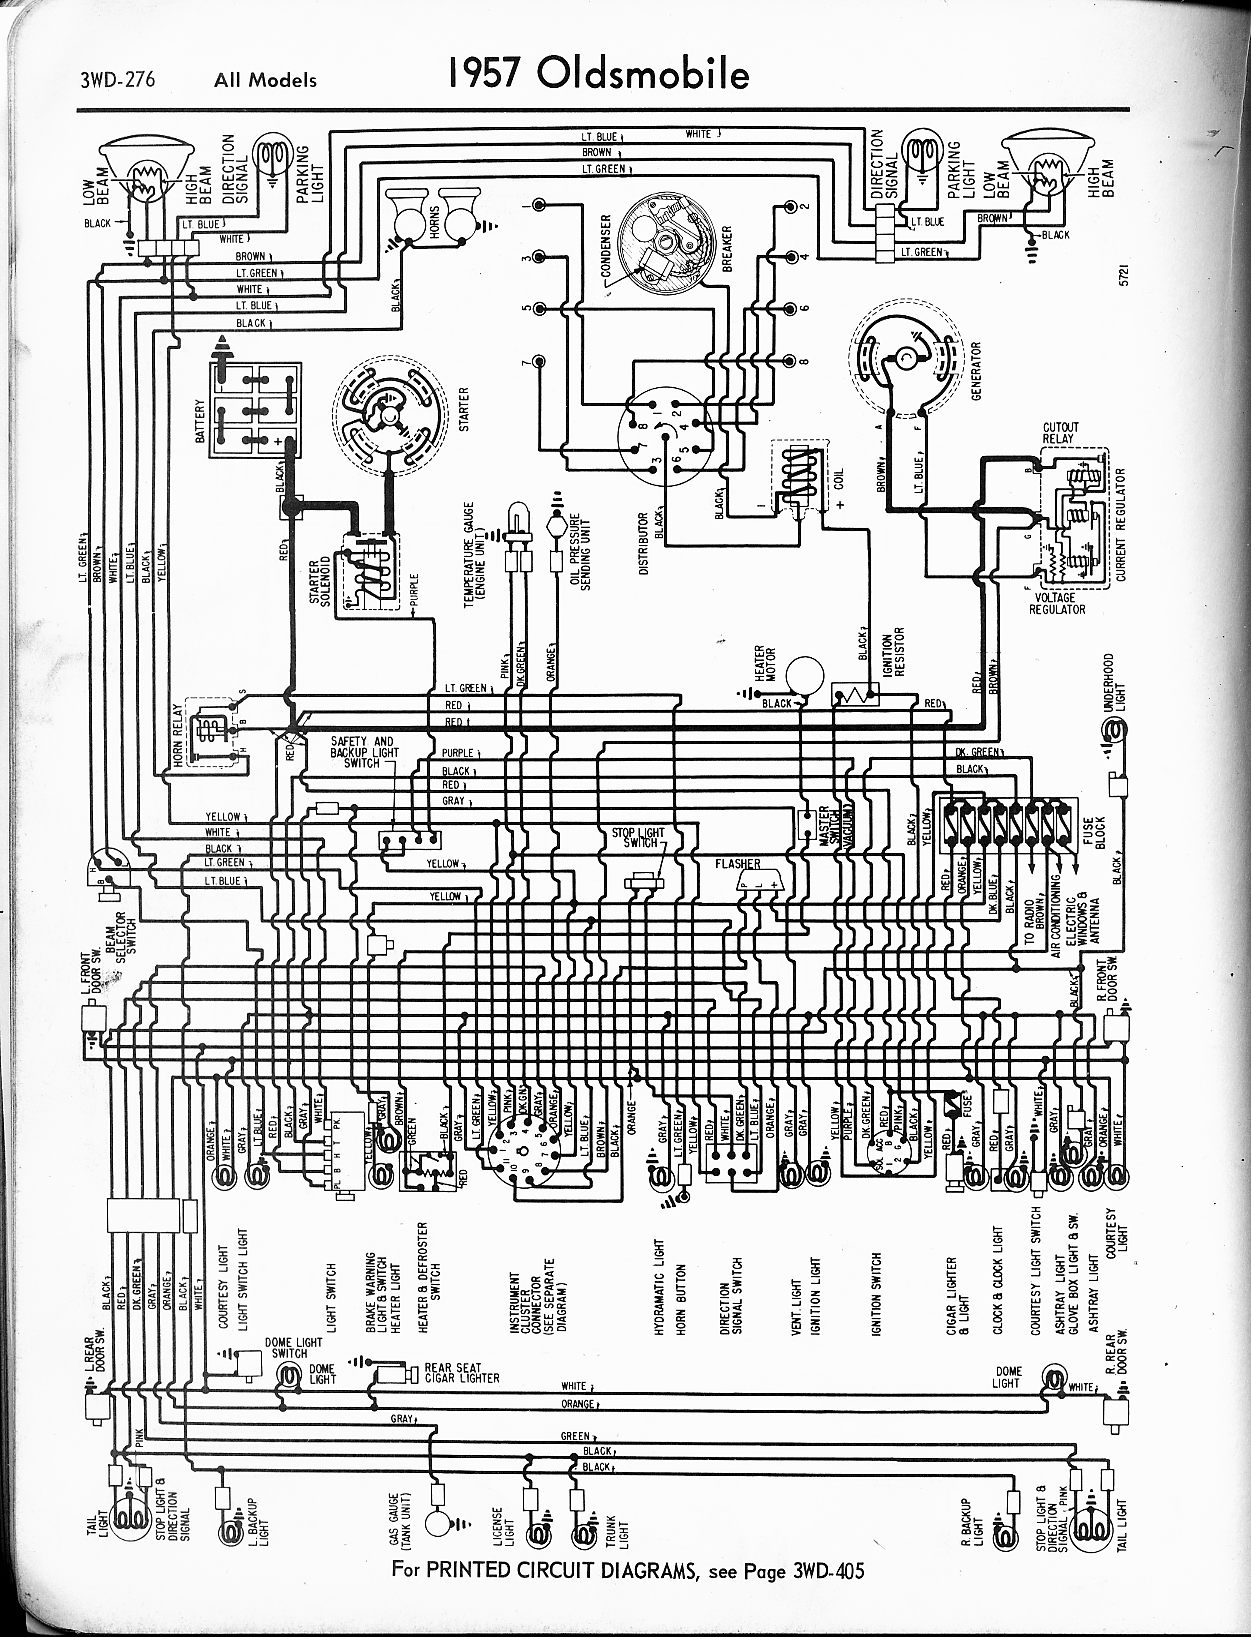 oldsmobile wiring diagrams the old car manual project wiring diagram 1969  oldsmobile 442 oldsmobile wiring diagrams